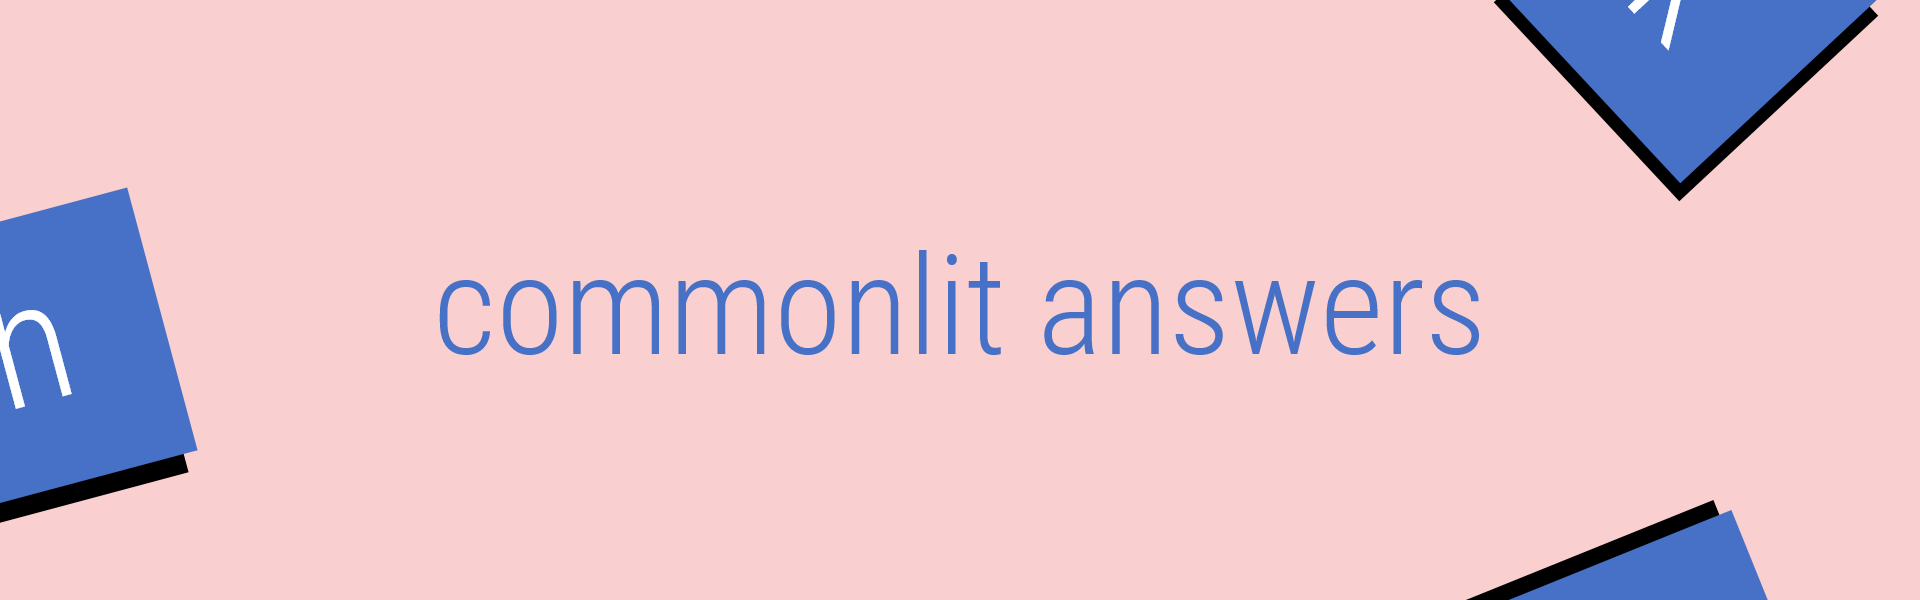 commonlit answers